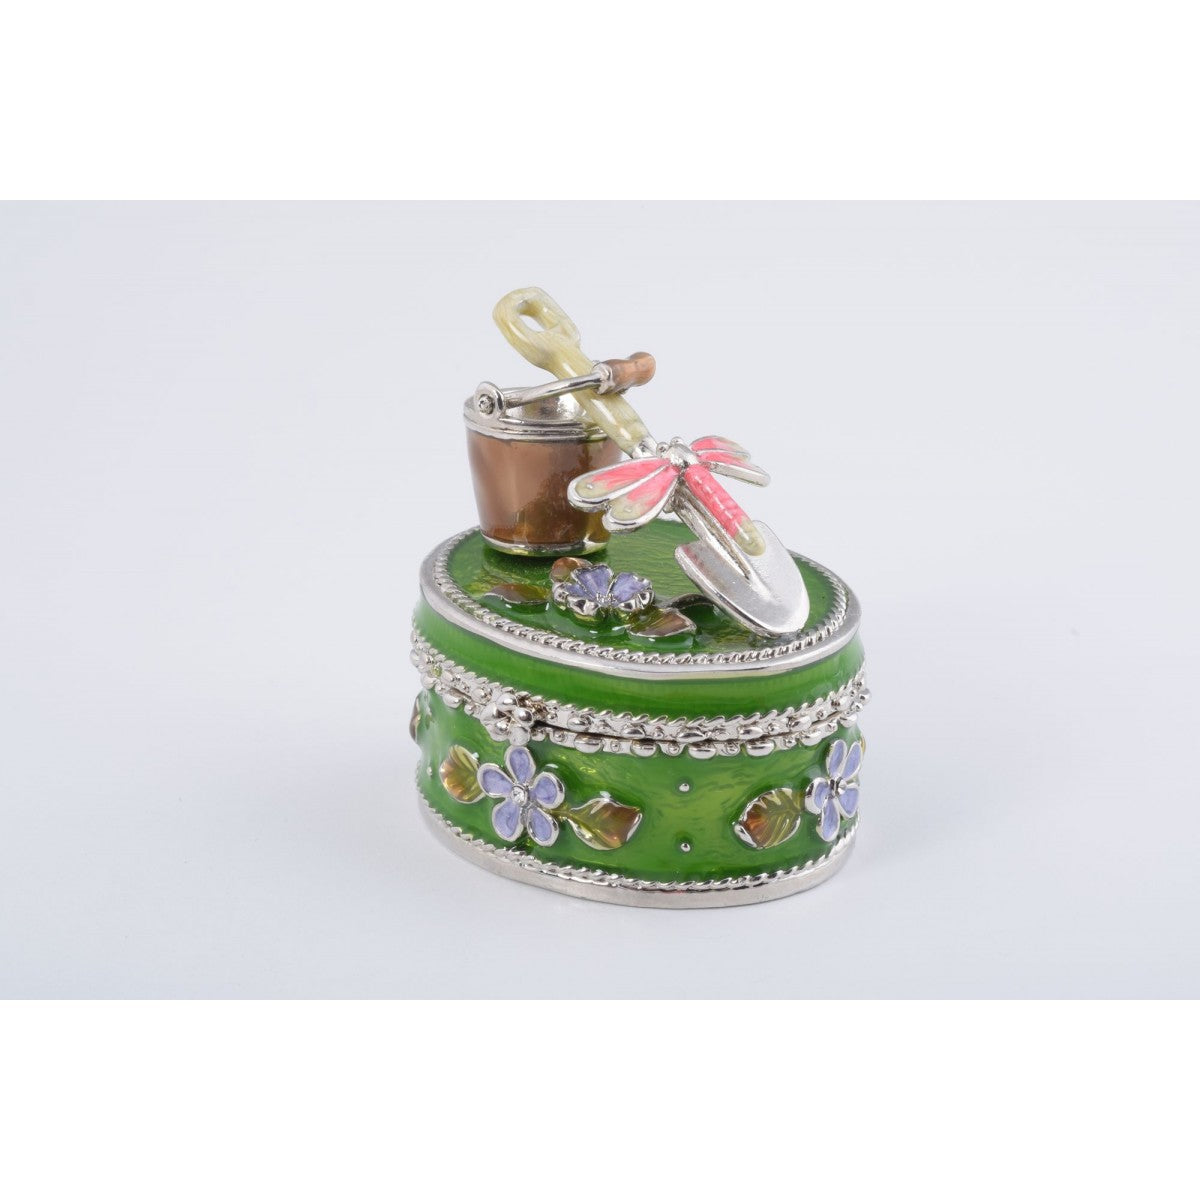 Green Trinket Box by Keren Kopal